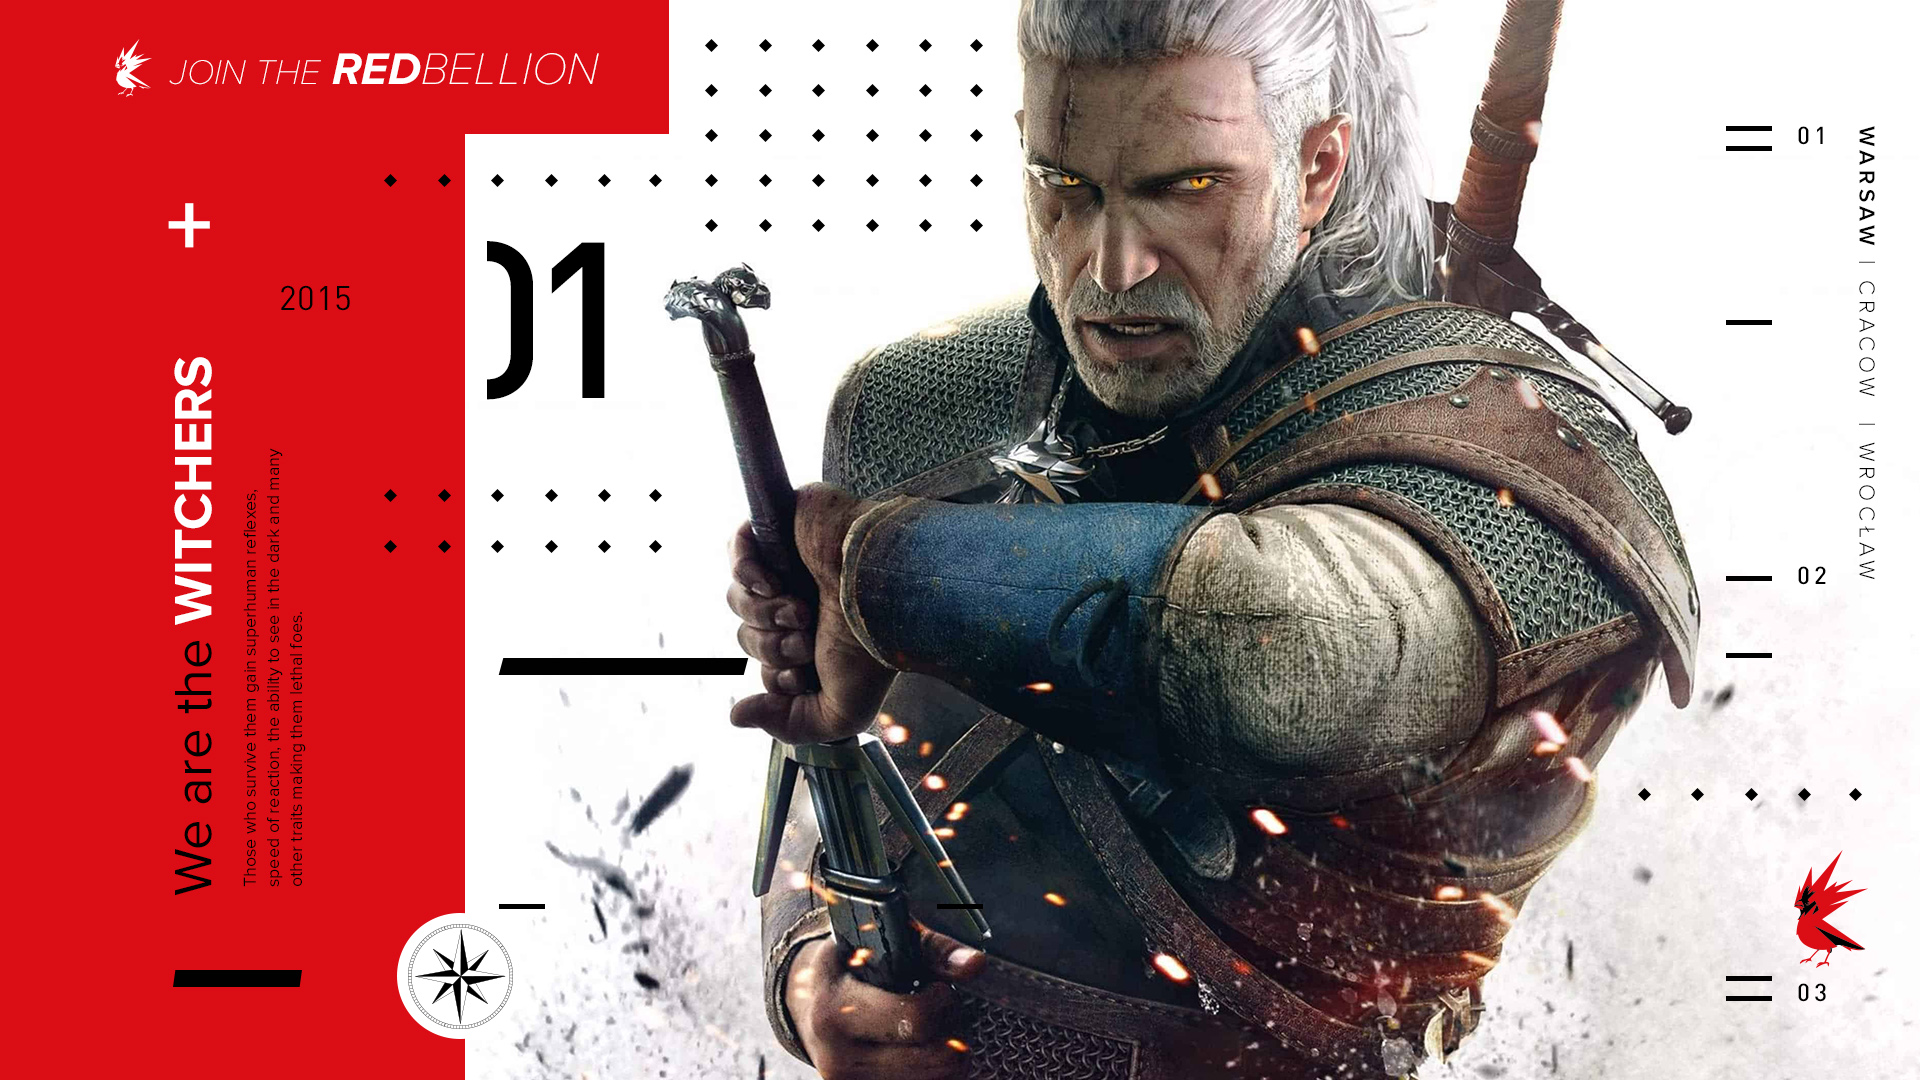 Geralt from The Witcher 3 in a design for CD Projekt Red